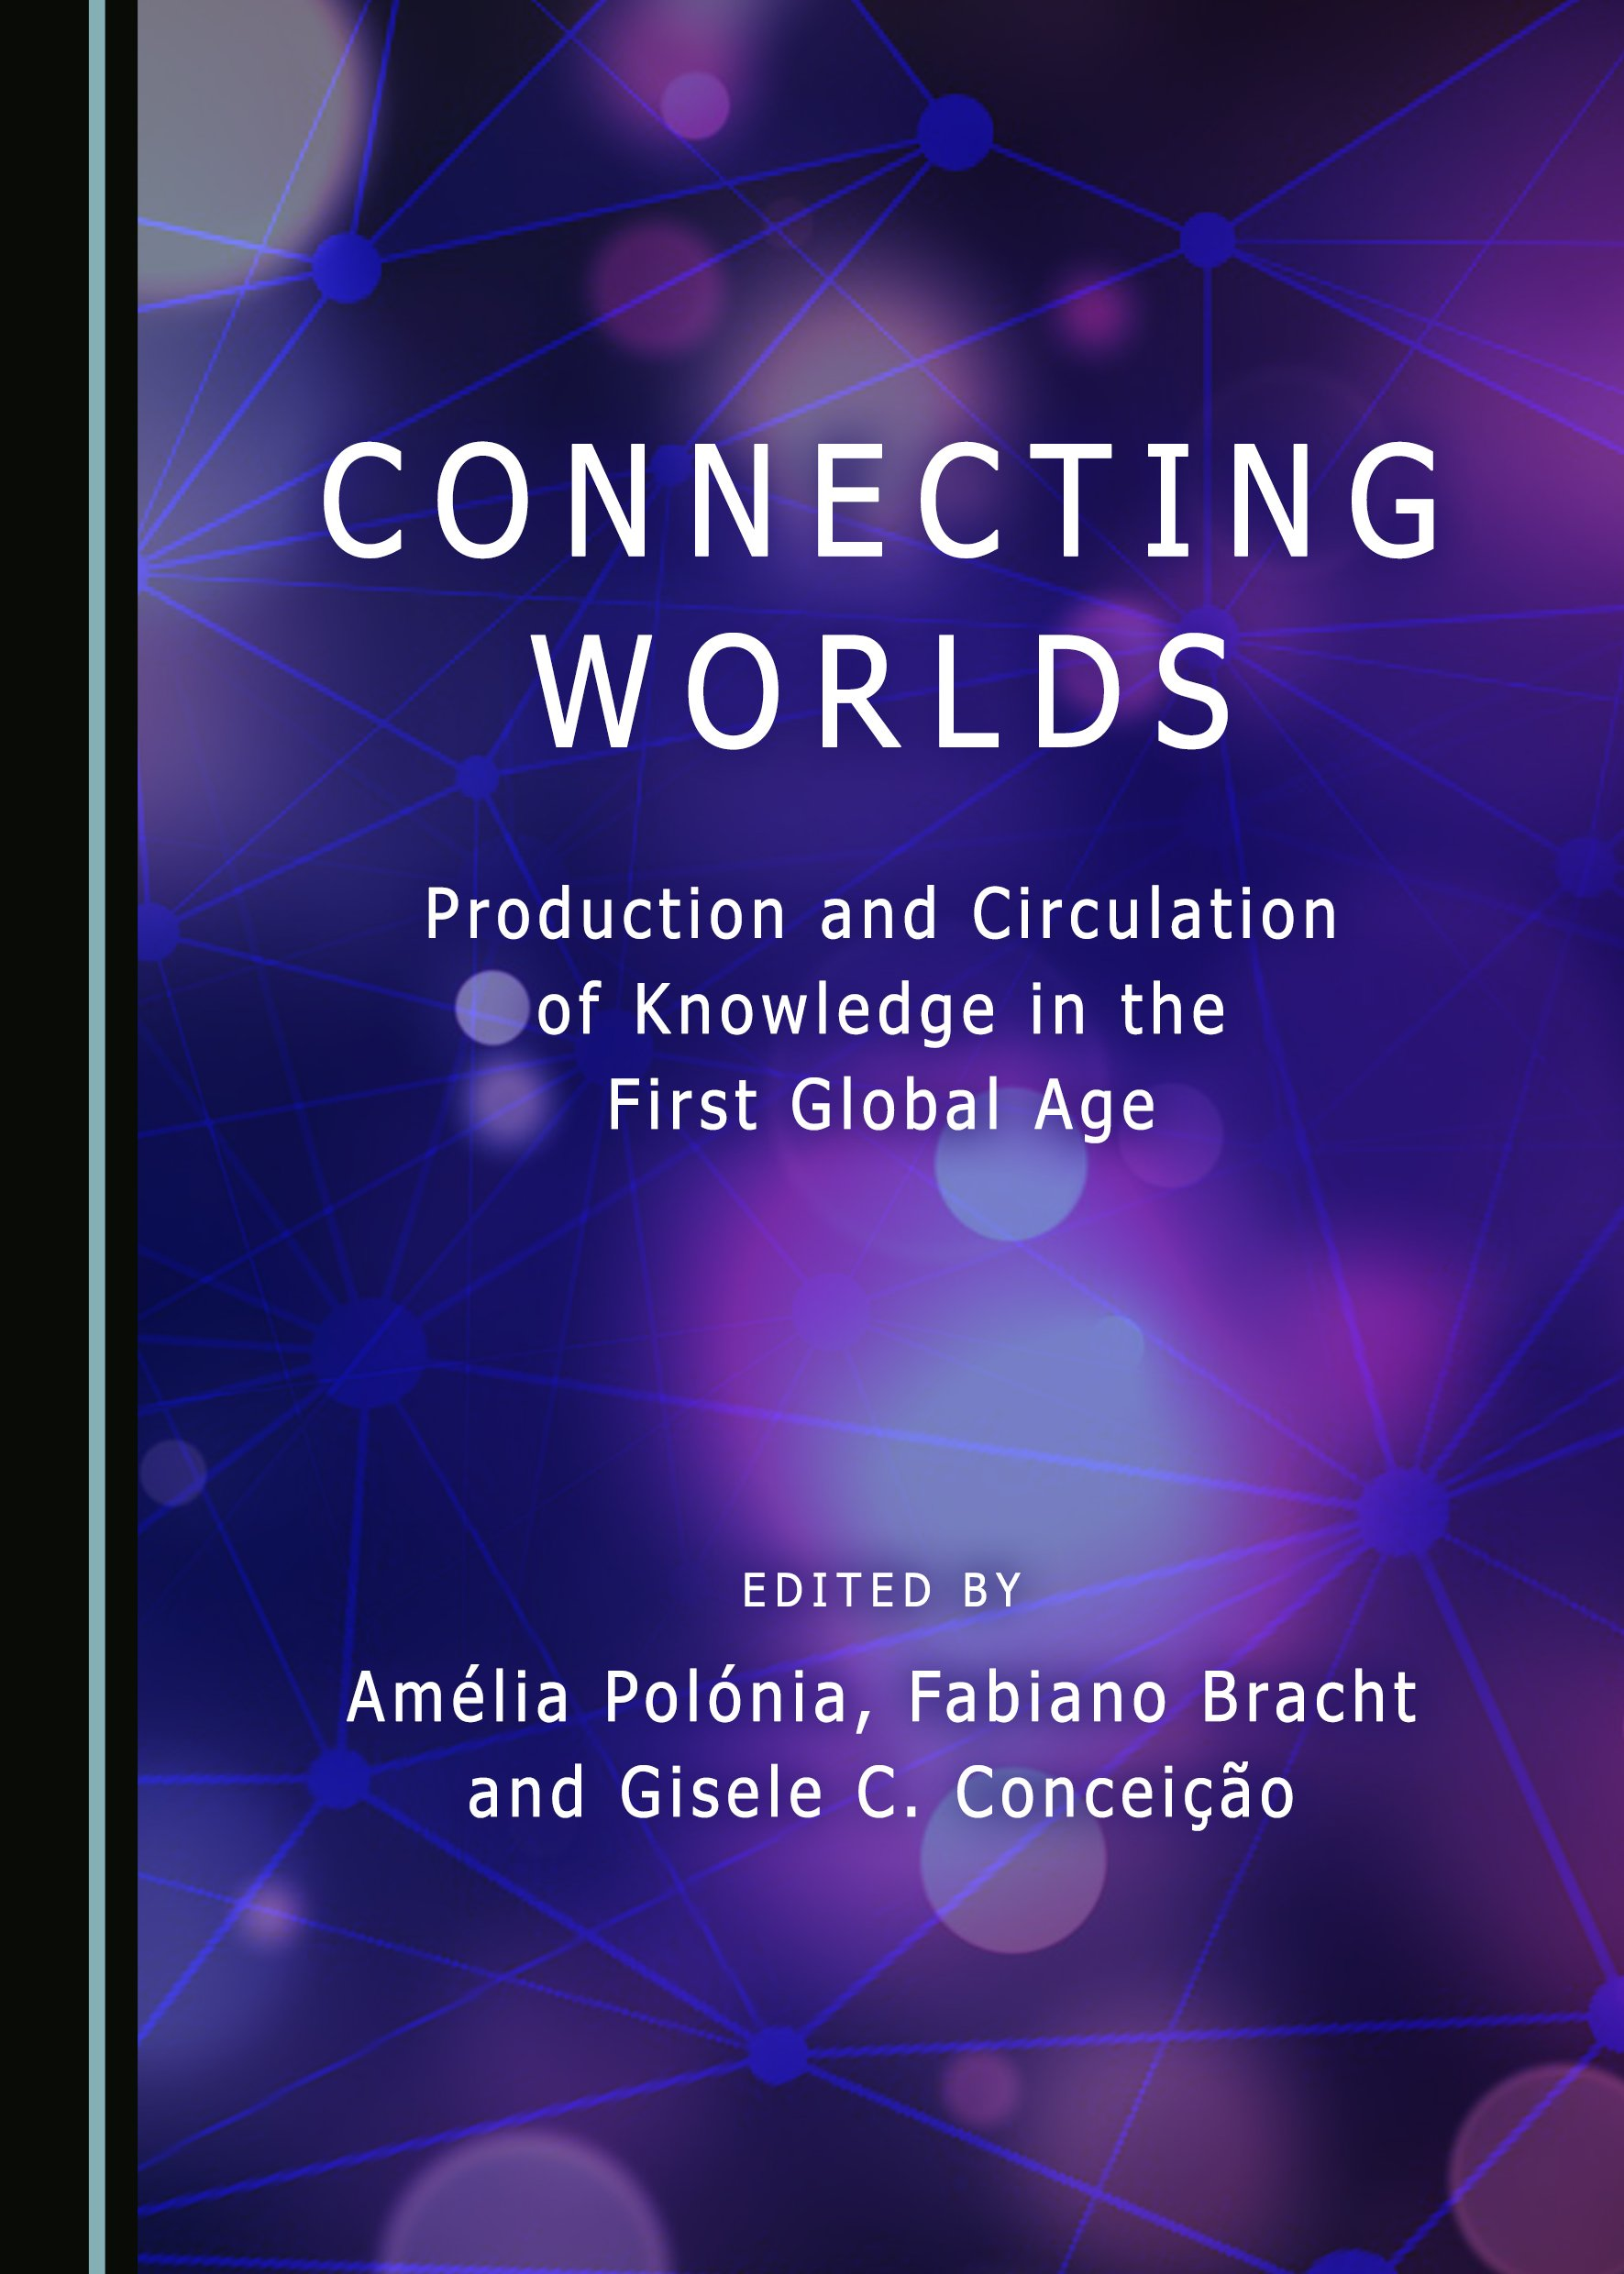 Connecting Worlds: Production and Circulation of Knowledge in the First Global Age